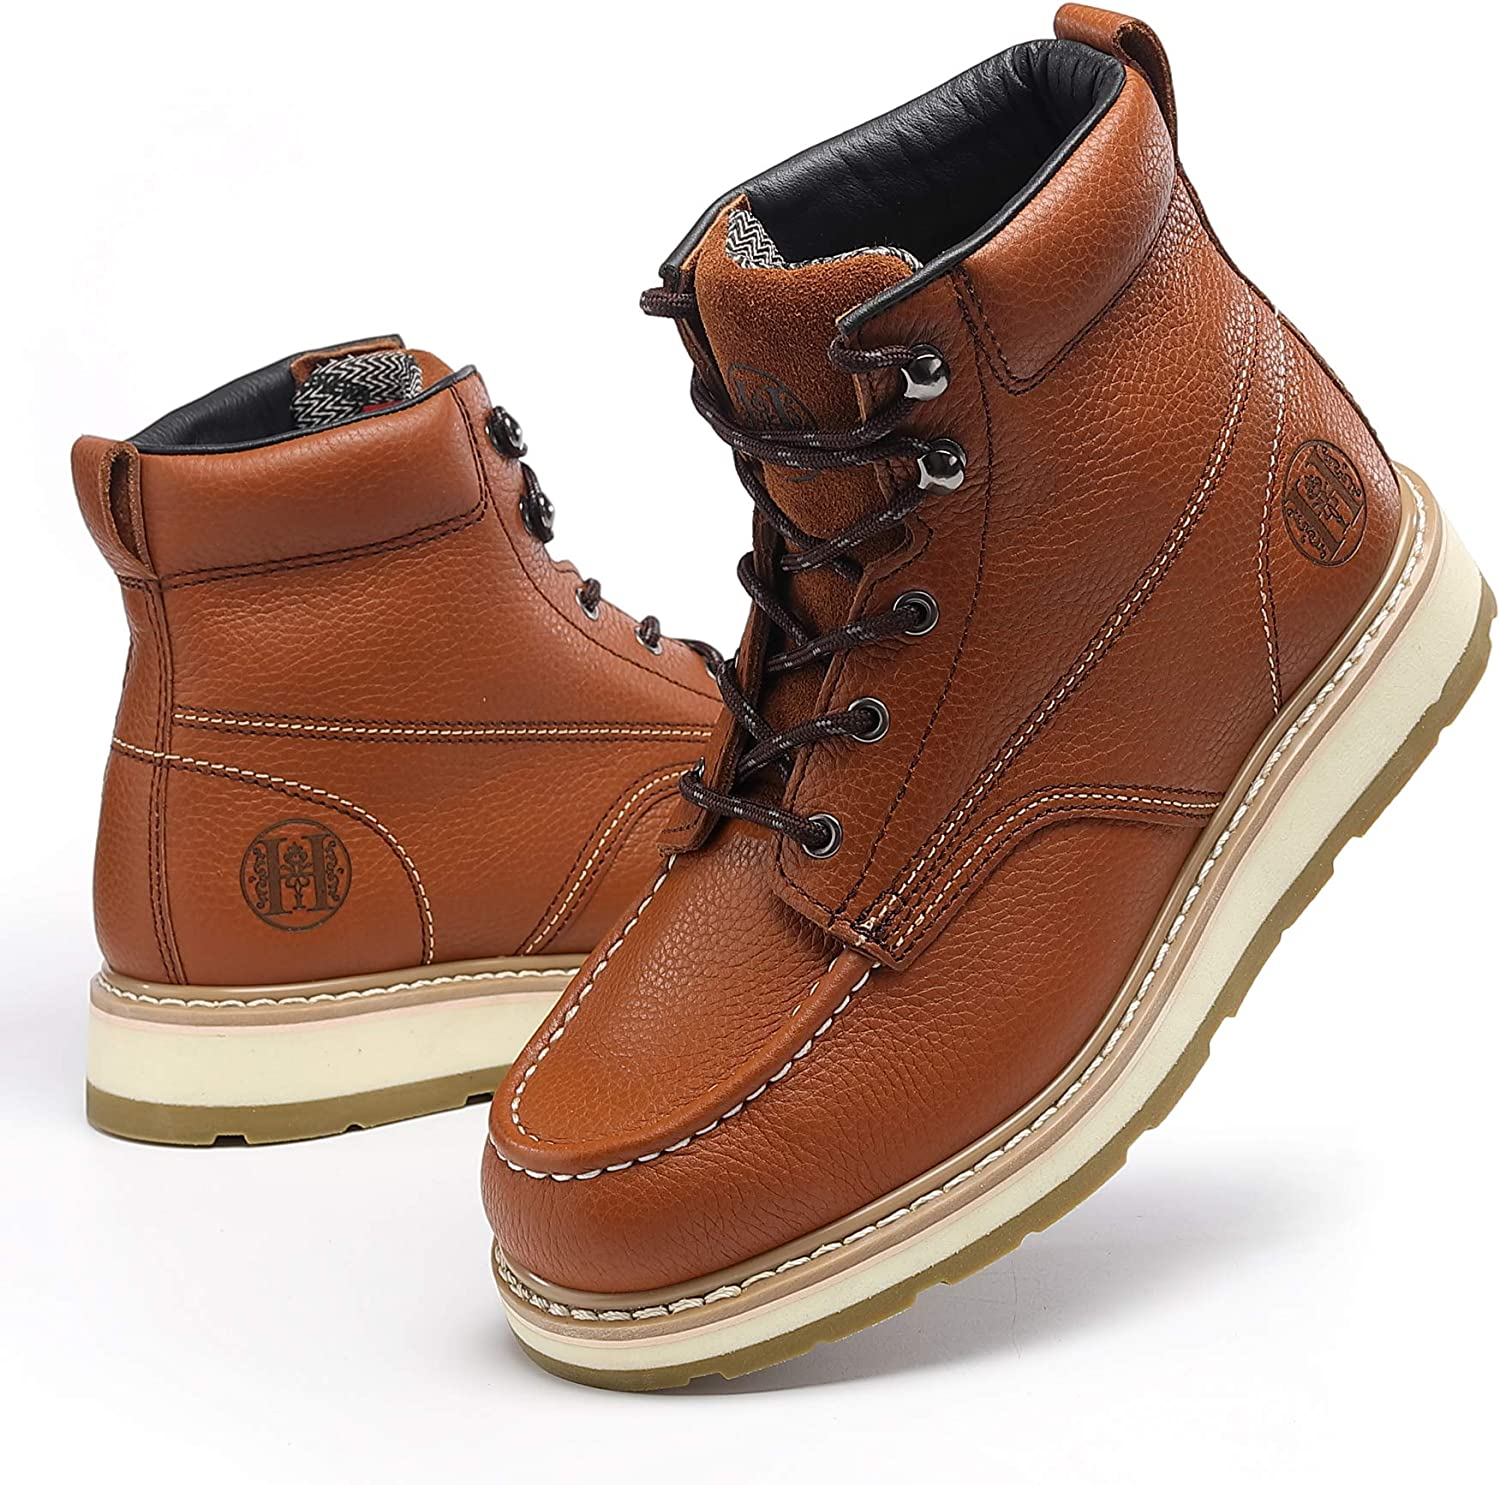 Montwell Work Boots for Men 6